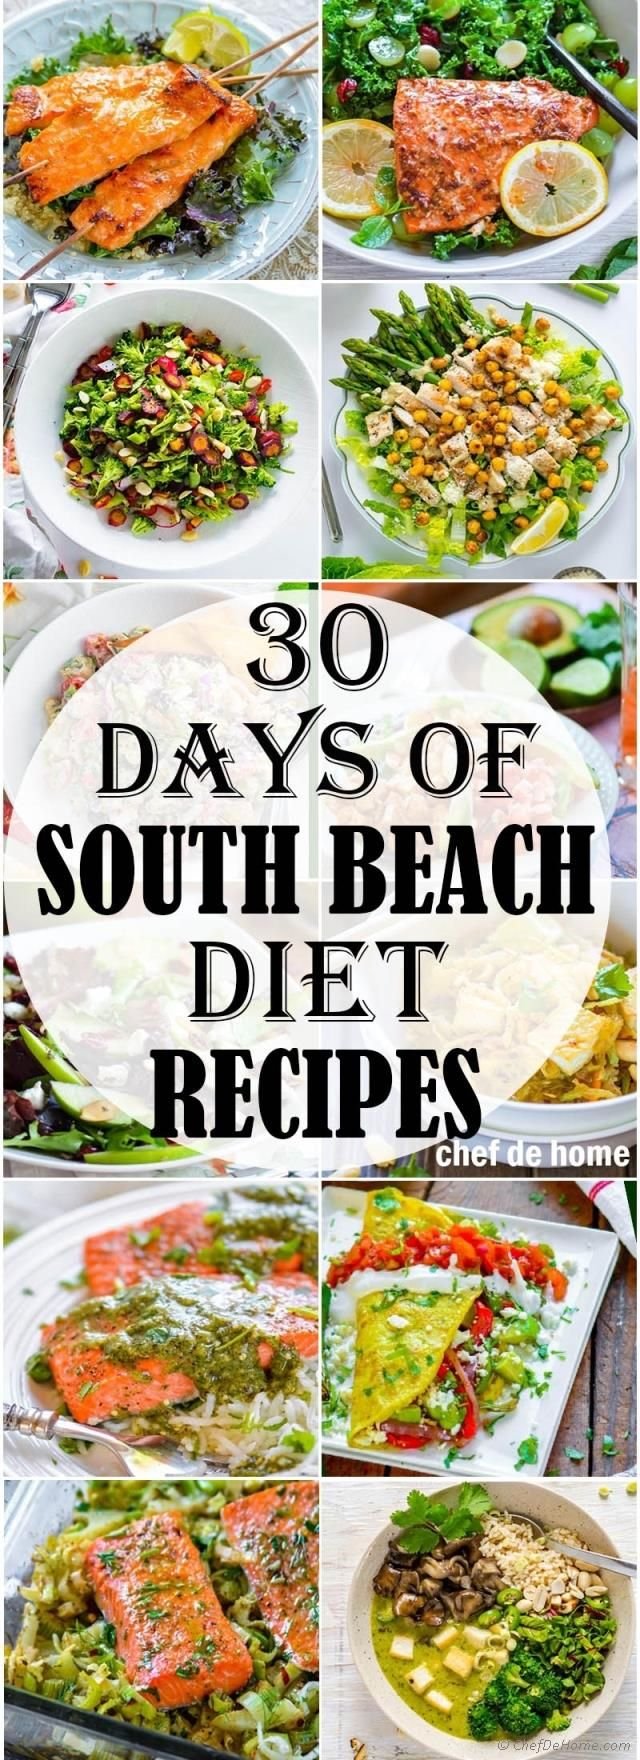 30 Days of South Beach Diet recipes. Lots of healthy, low-carb, low-sugar, and high protein recipes to for 4 week's diet plan.